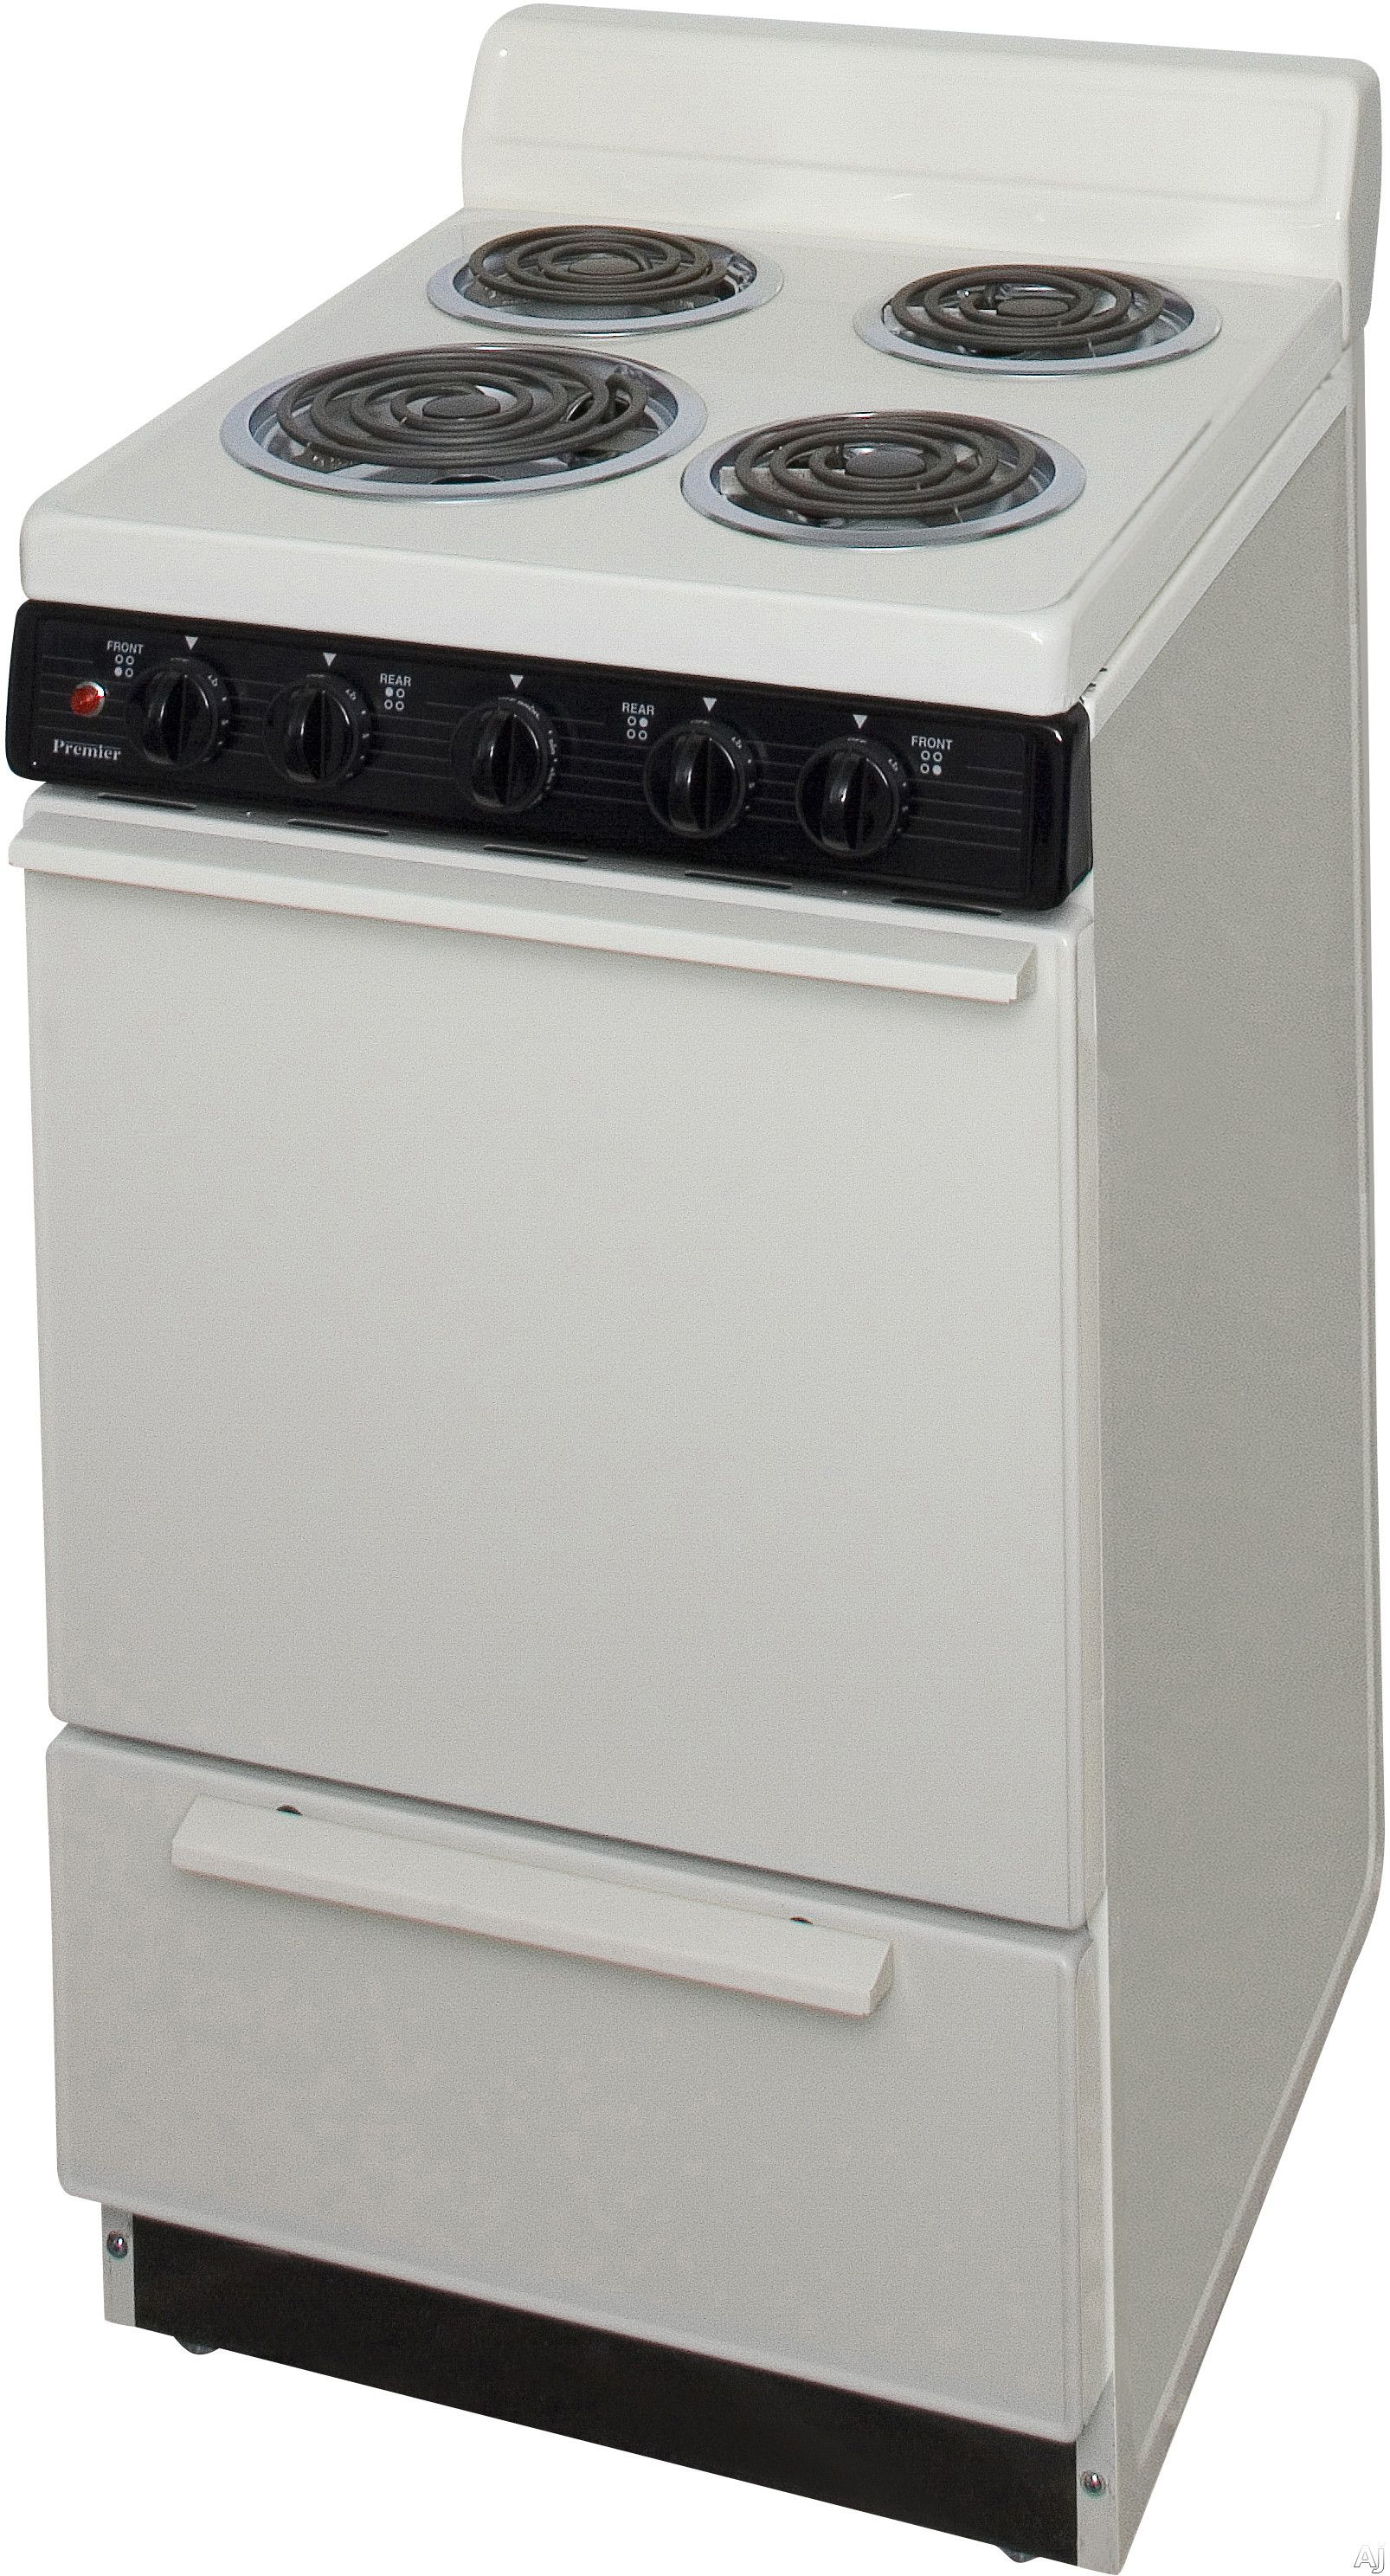 Premier Eak100t Freestanding Electric Ranges Storage Drawers Oven Cleaning